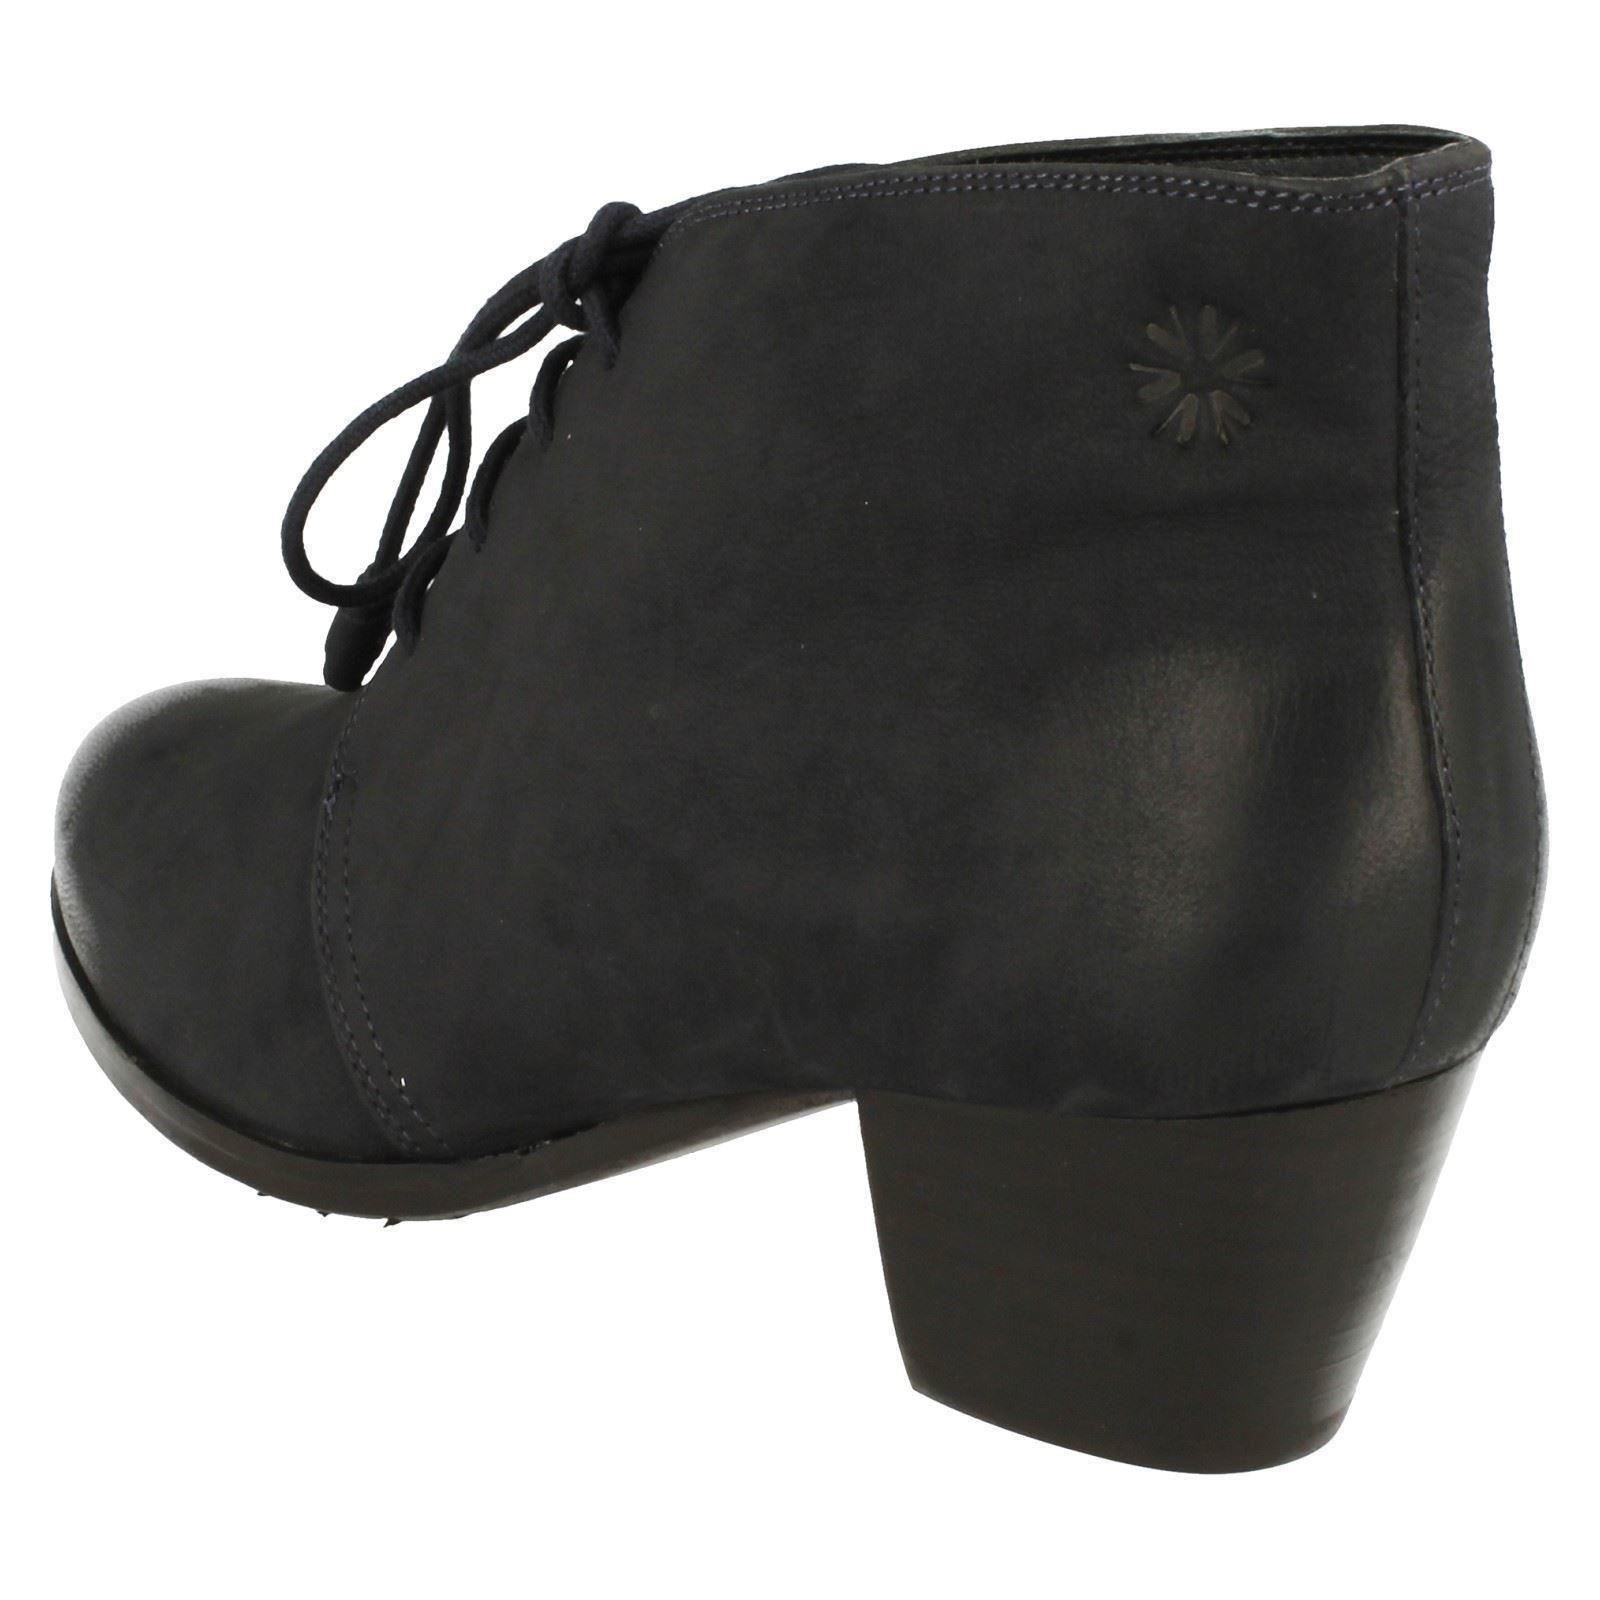 Ladies Van Dal Stylish Ankle Boots Boots Boots 'Amity' 1c1fa2